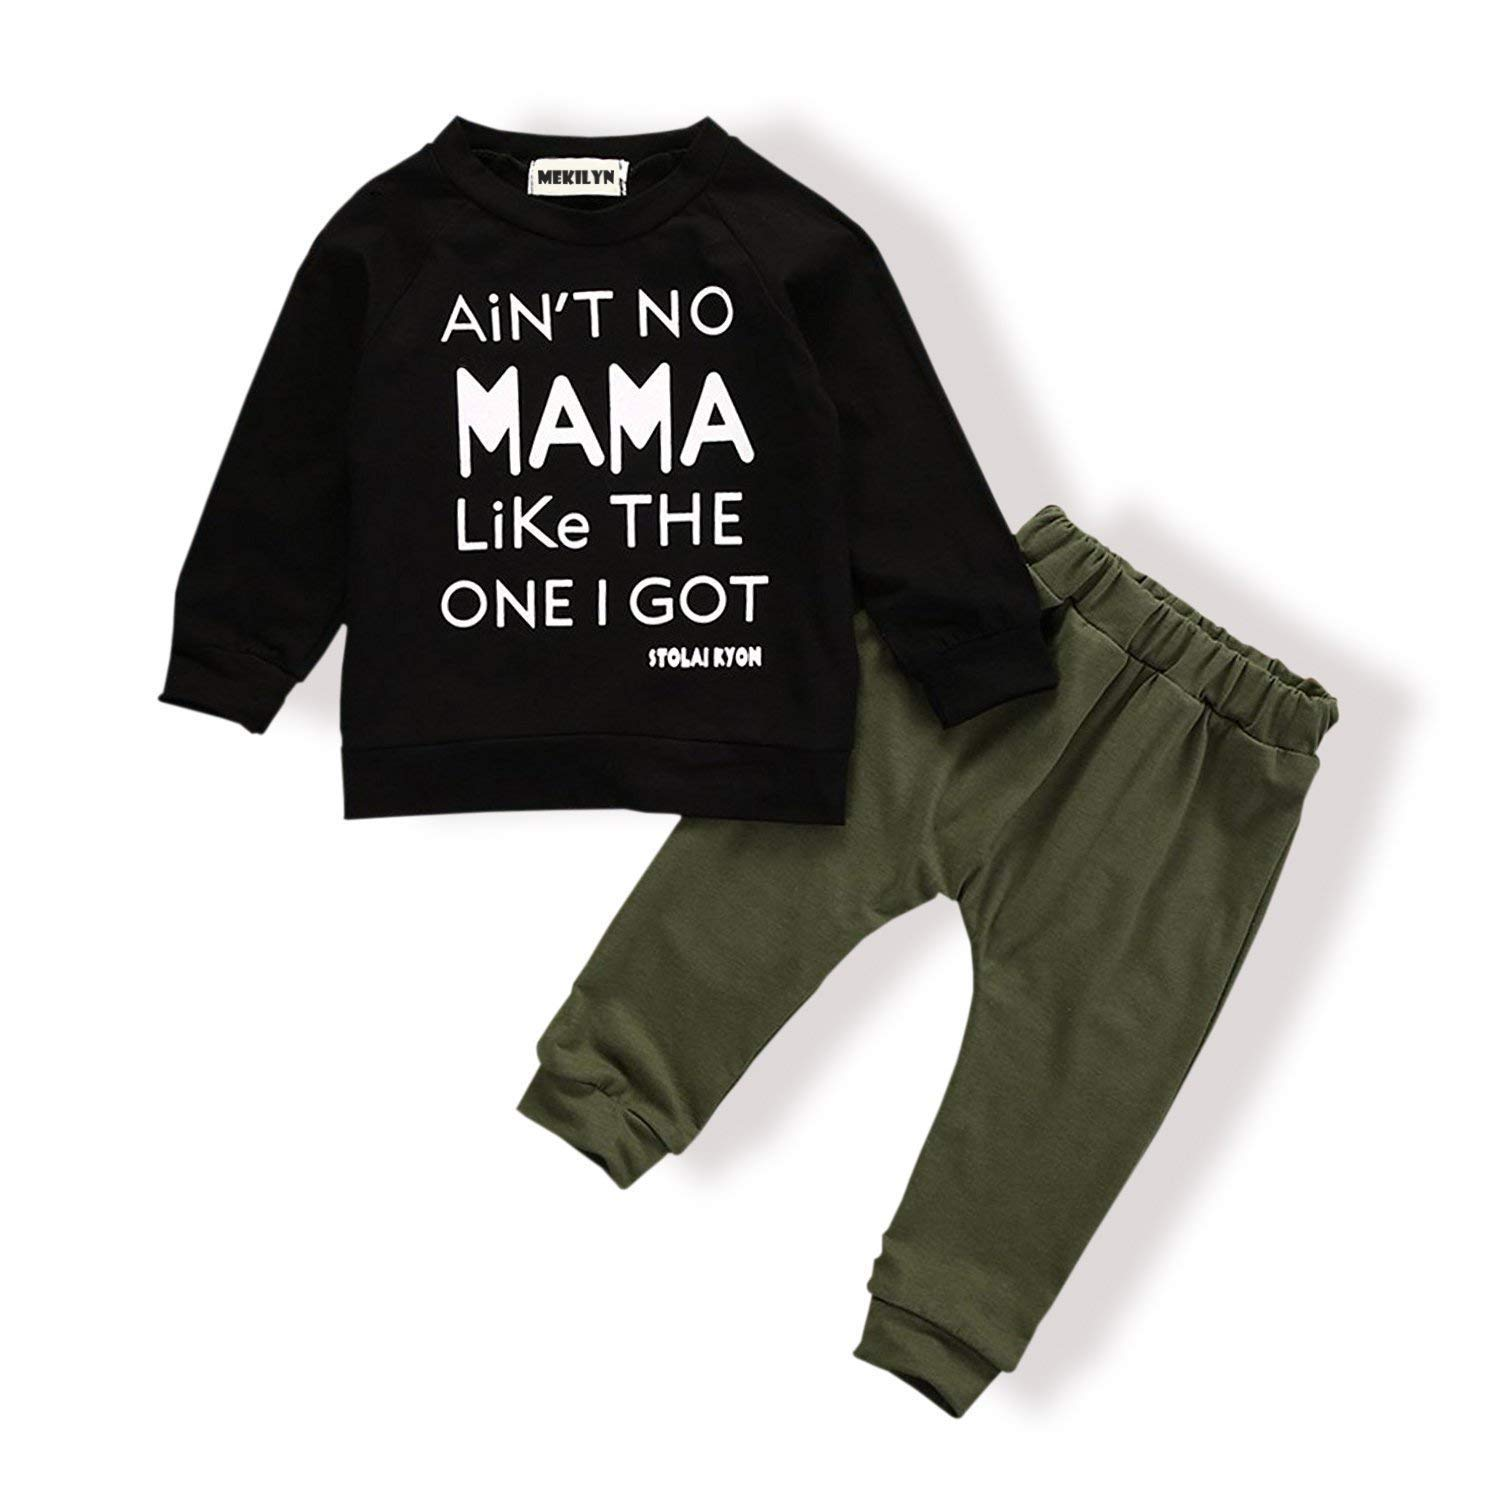 2PCs Baby Deer Print Hoodies with Pocket Top + Striped Long Pants Autumn Outfit Set